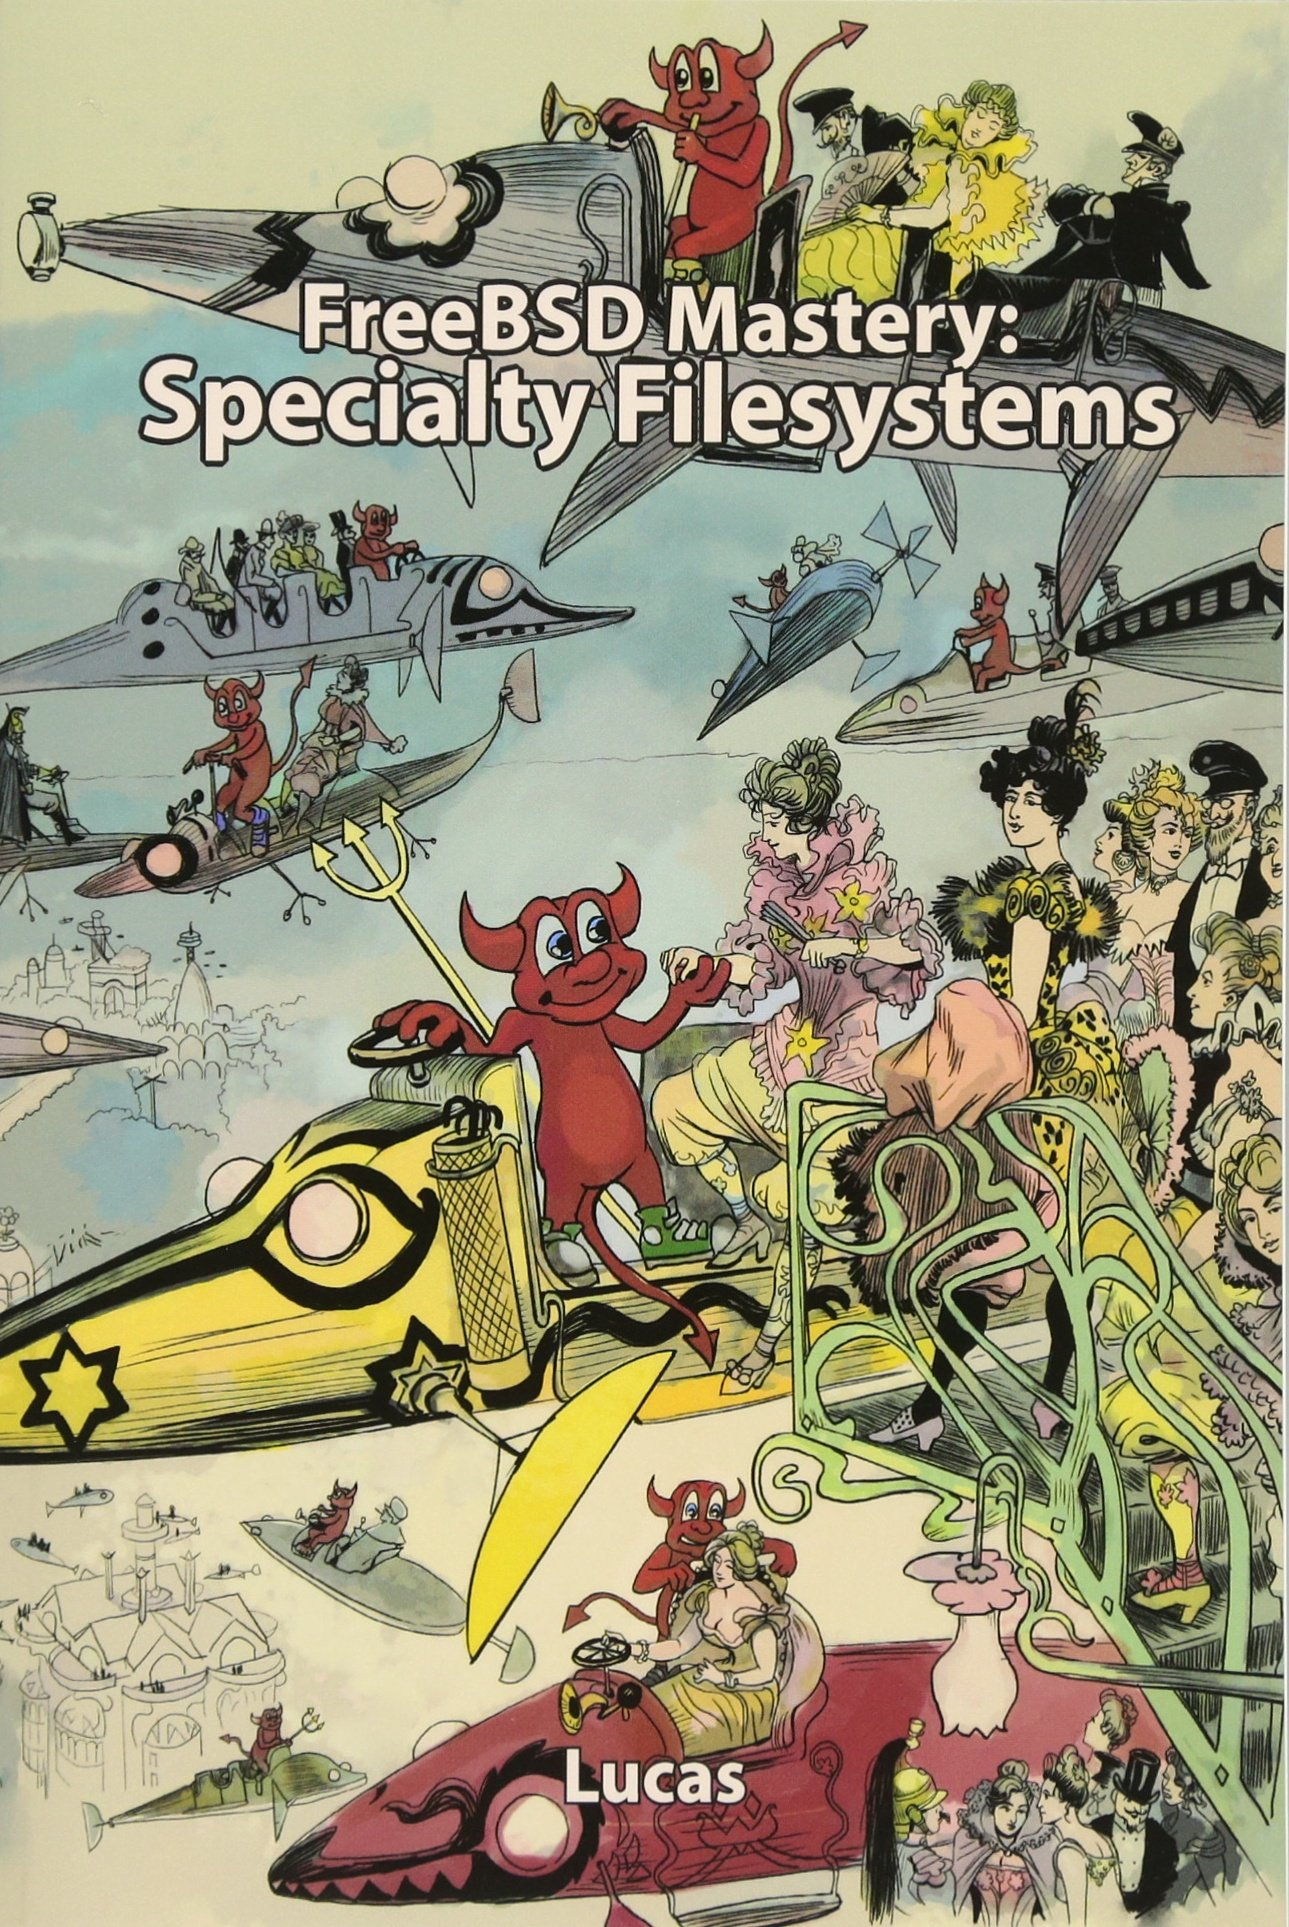 FreeBSD Mastery: Specialty Filesystems (IT Mastery) (Volume 8) PDF